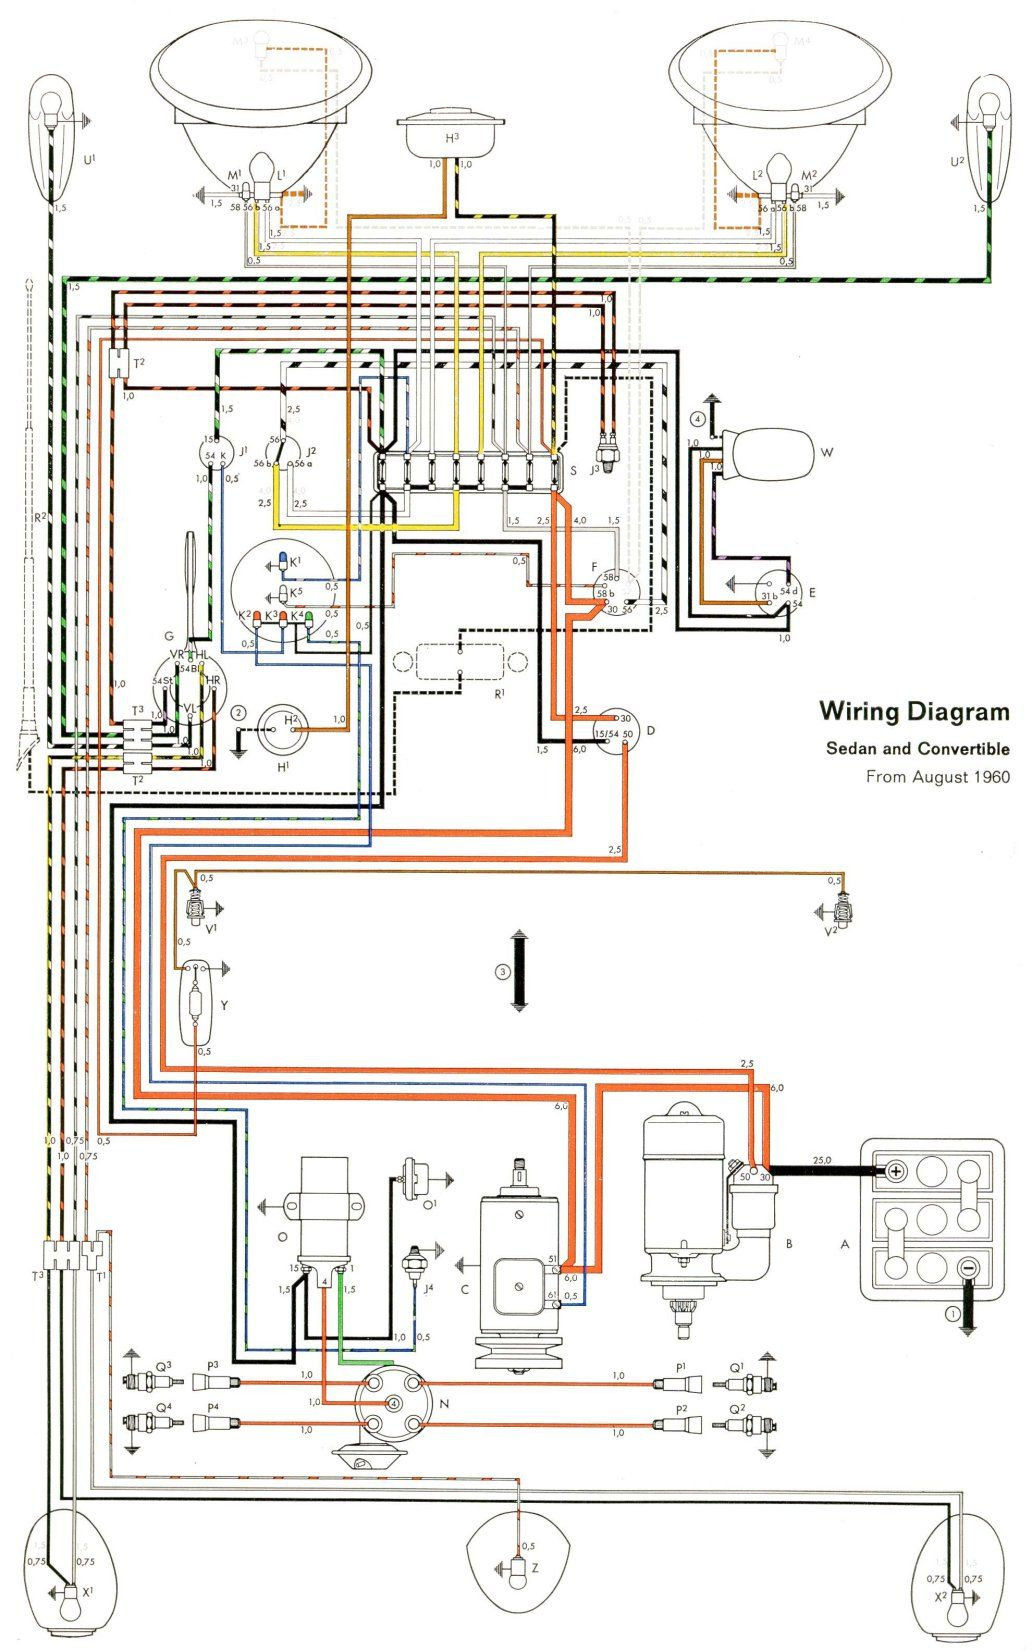 1961 beetle wiring diagram | vw beetles, vw bug, vw dune buggy  pinterest